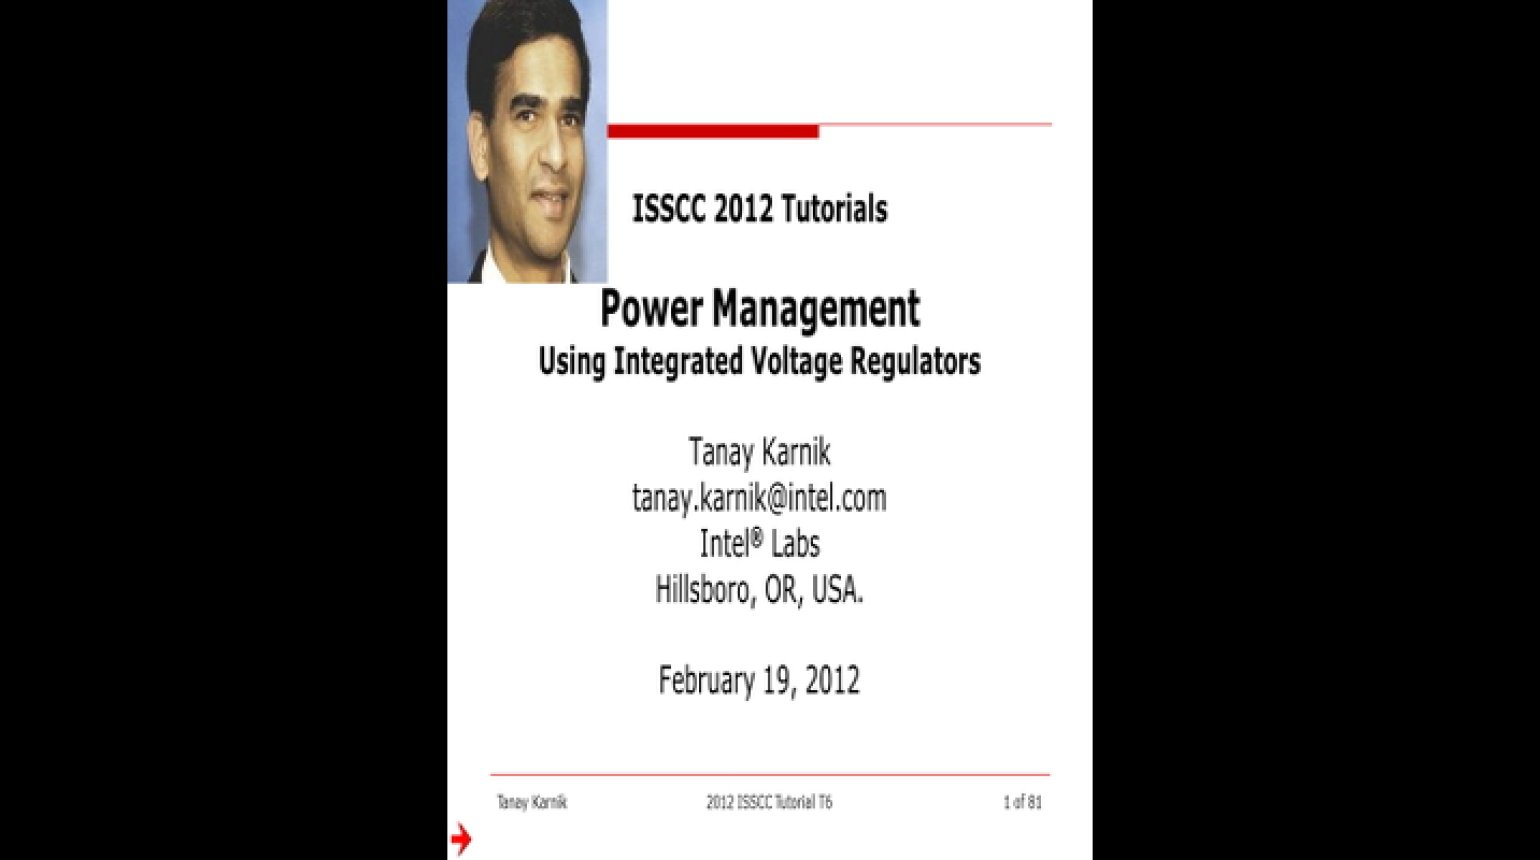 Power Management Using Integrated Voltage Regulators Video